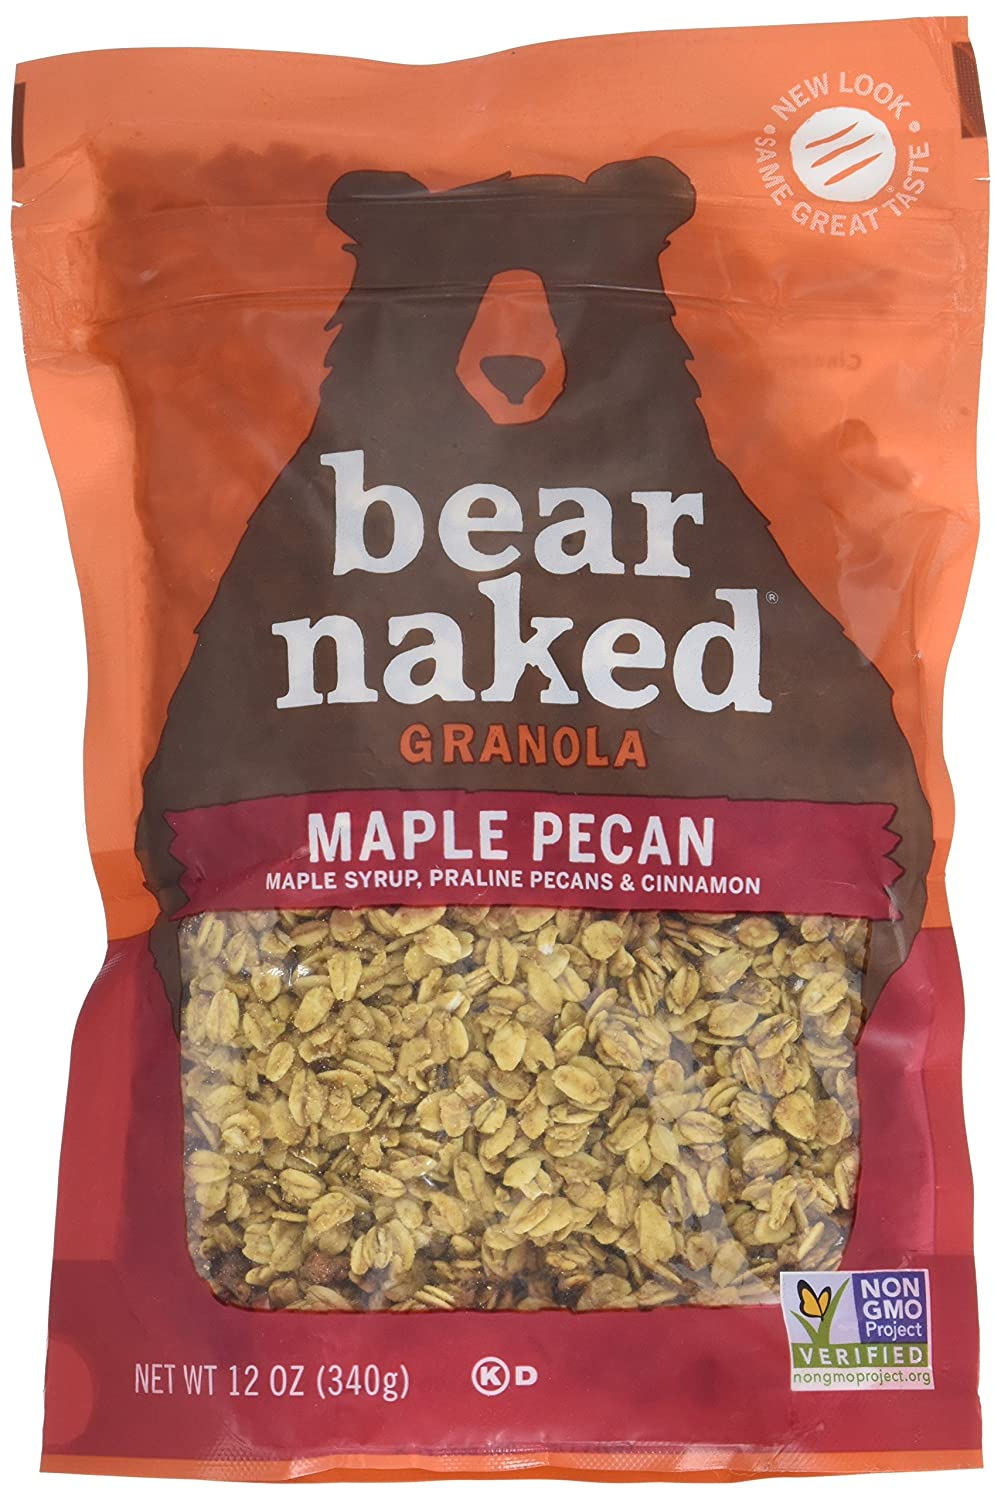 Bear Naked Maple Pecan Granola, 12 Ounce - 6 per case.